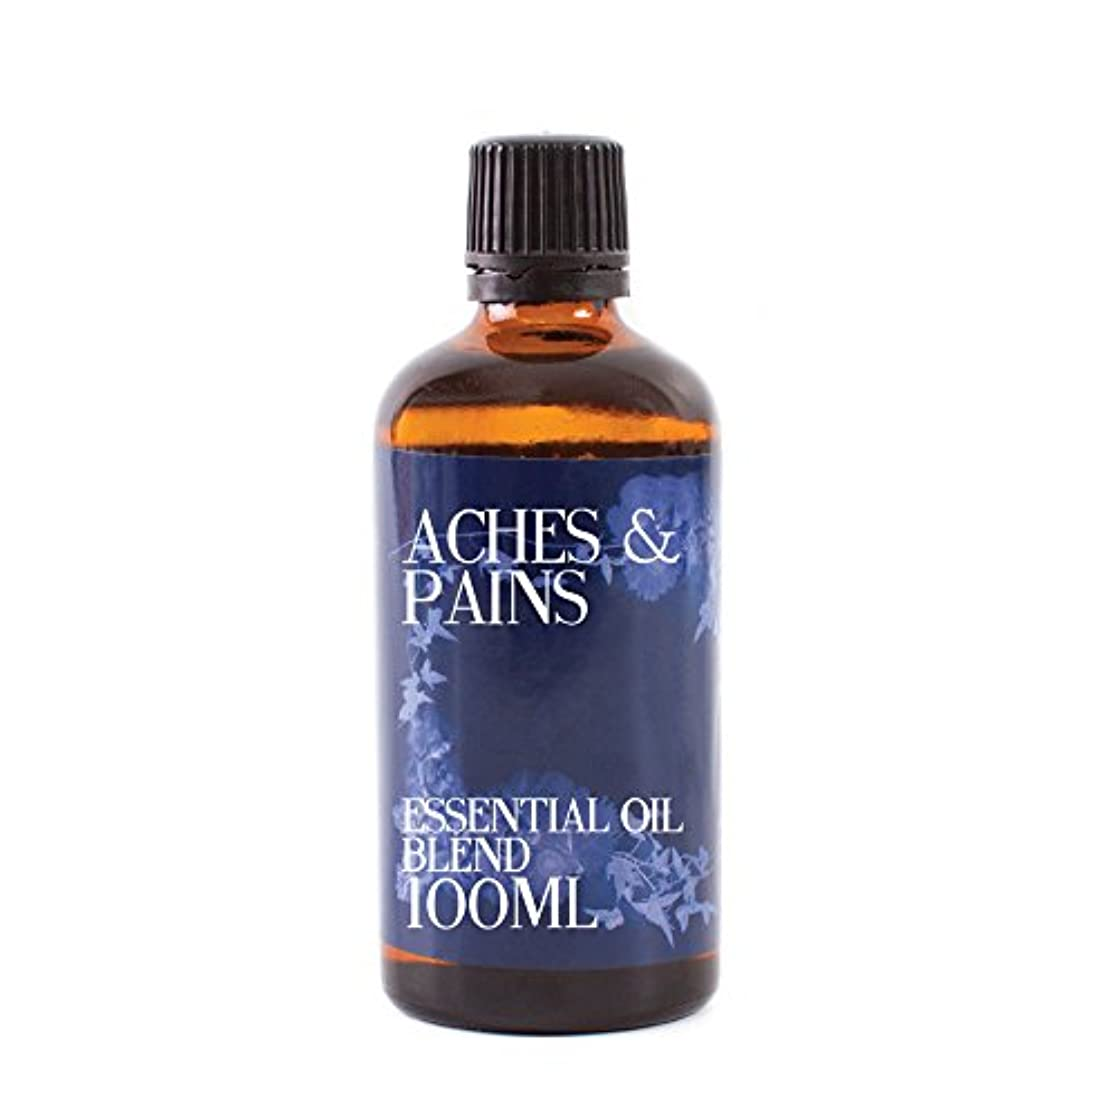 審判疼痛柔らかさMystic Moments | Aches and Pains Essential Oil Blend - 100ml - 100% Pure